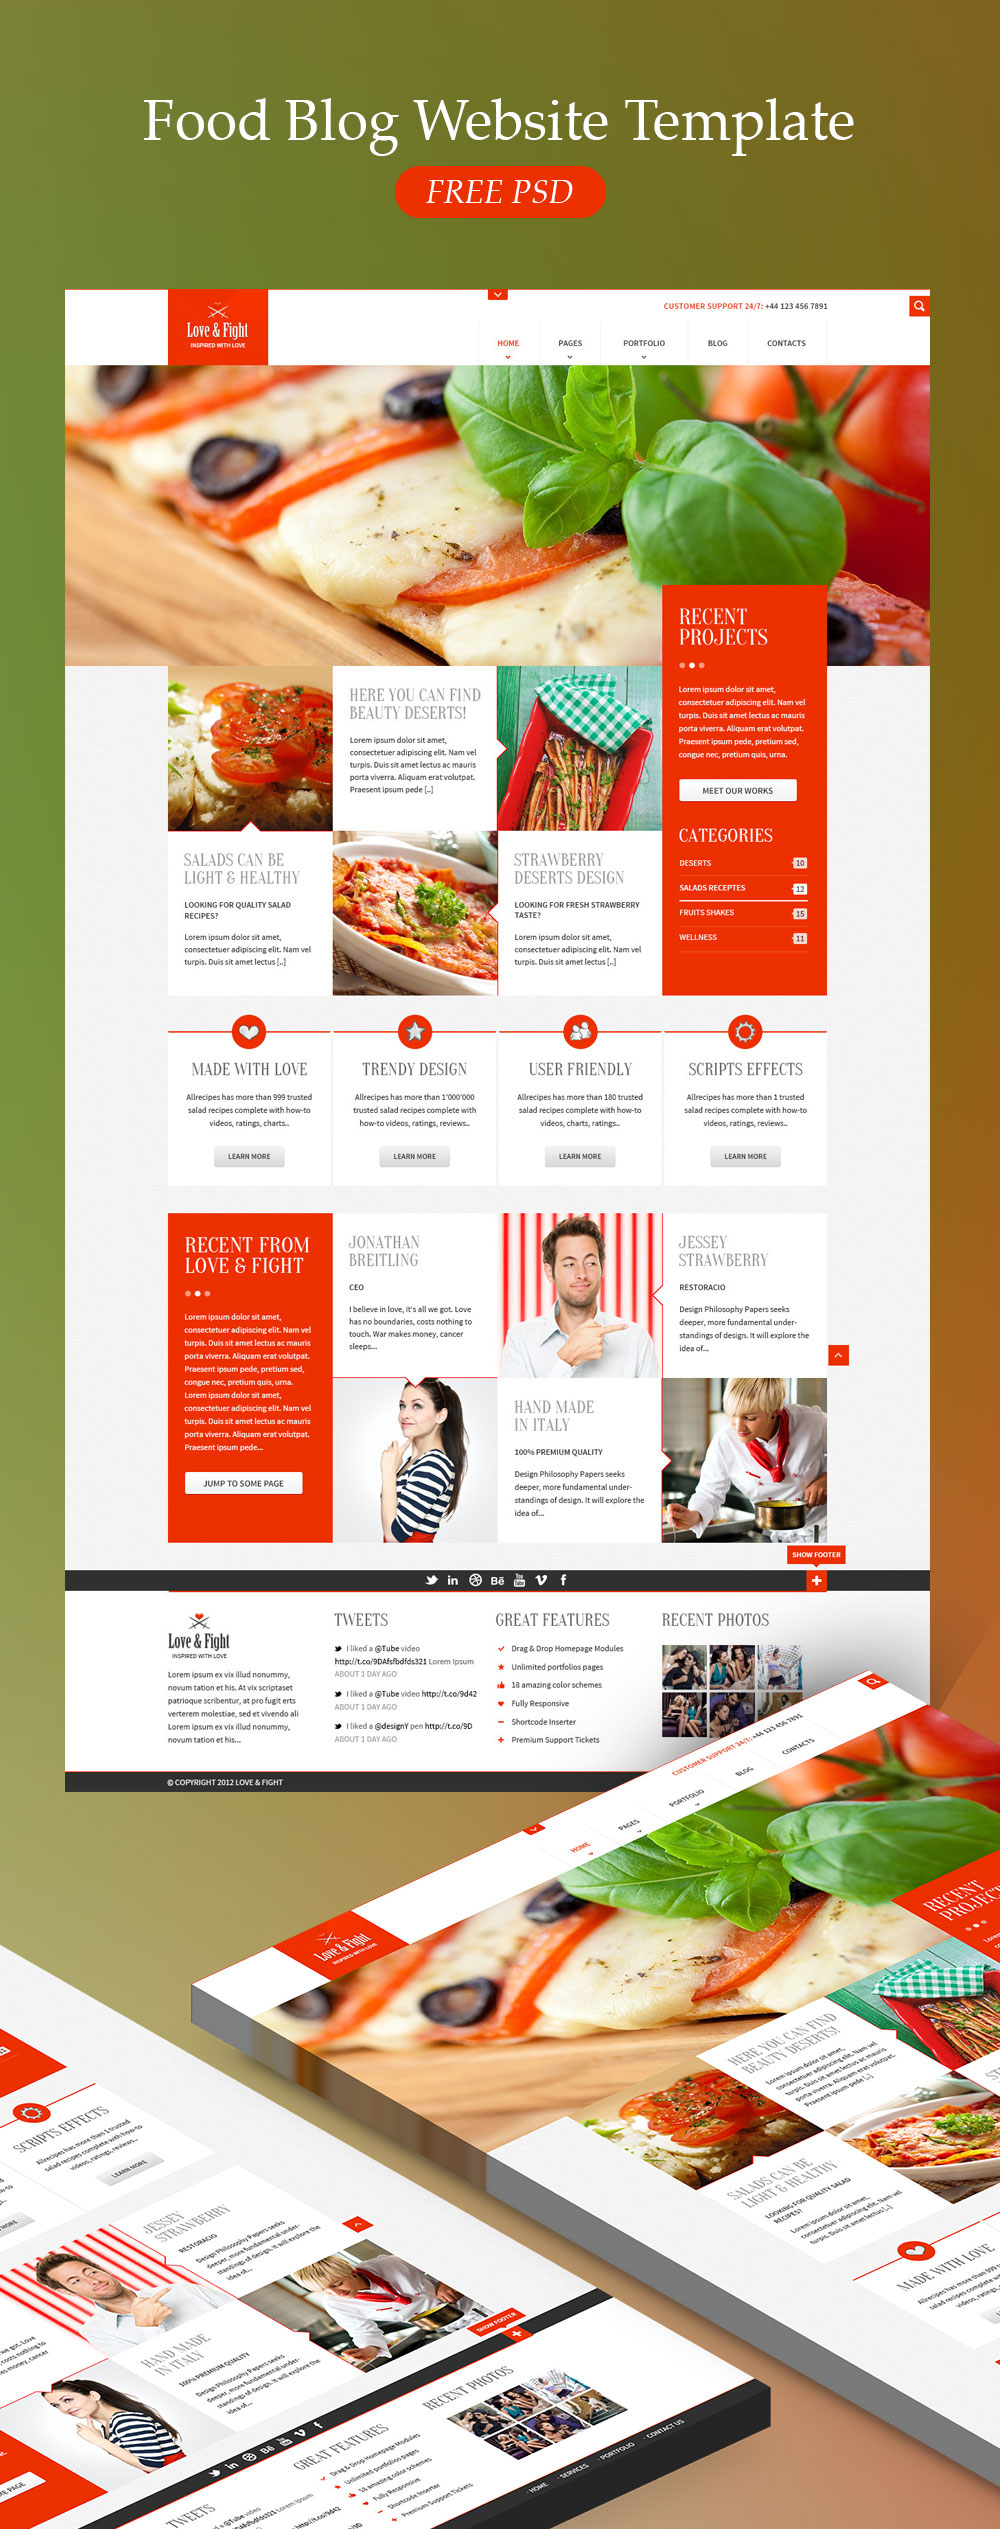 Food blog website template free psd download download psd food blog website template free psd forumfinder Gallery